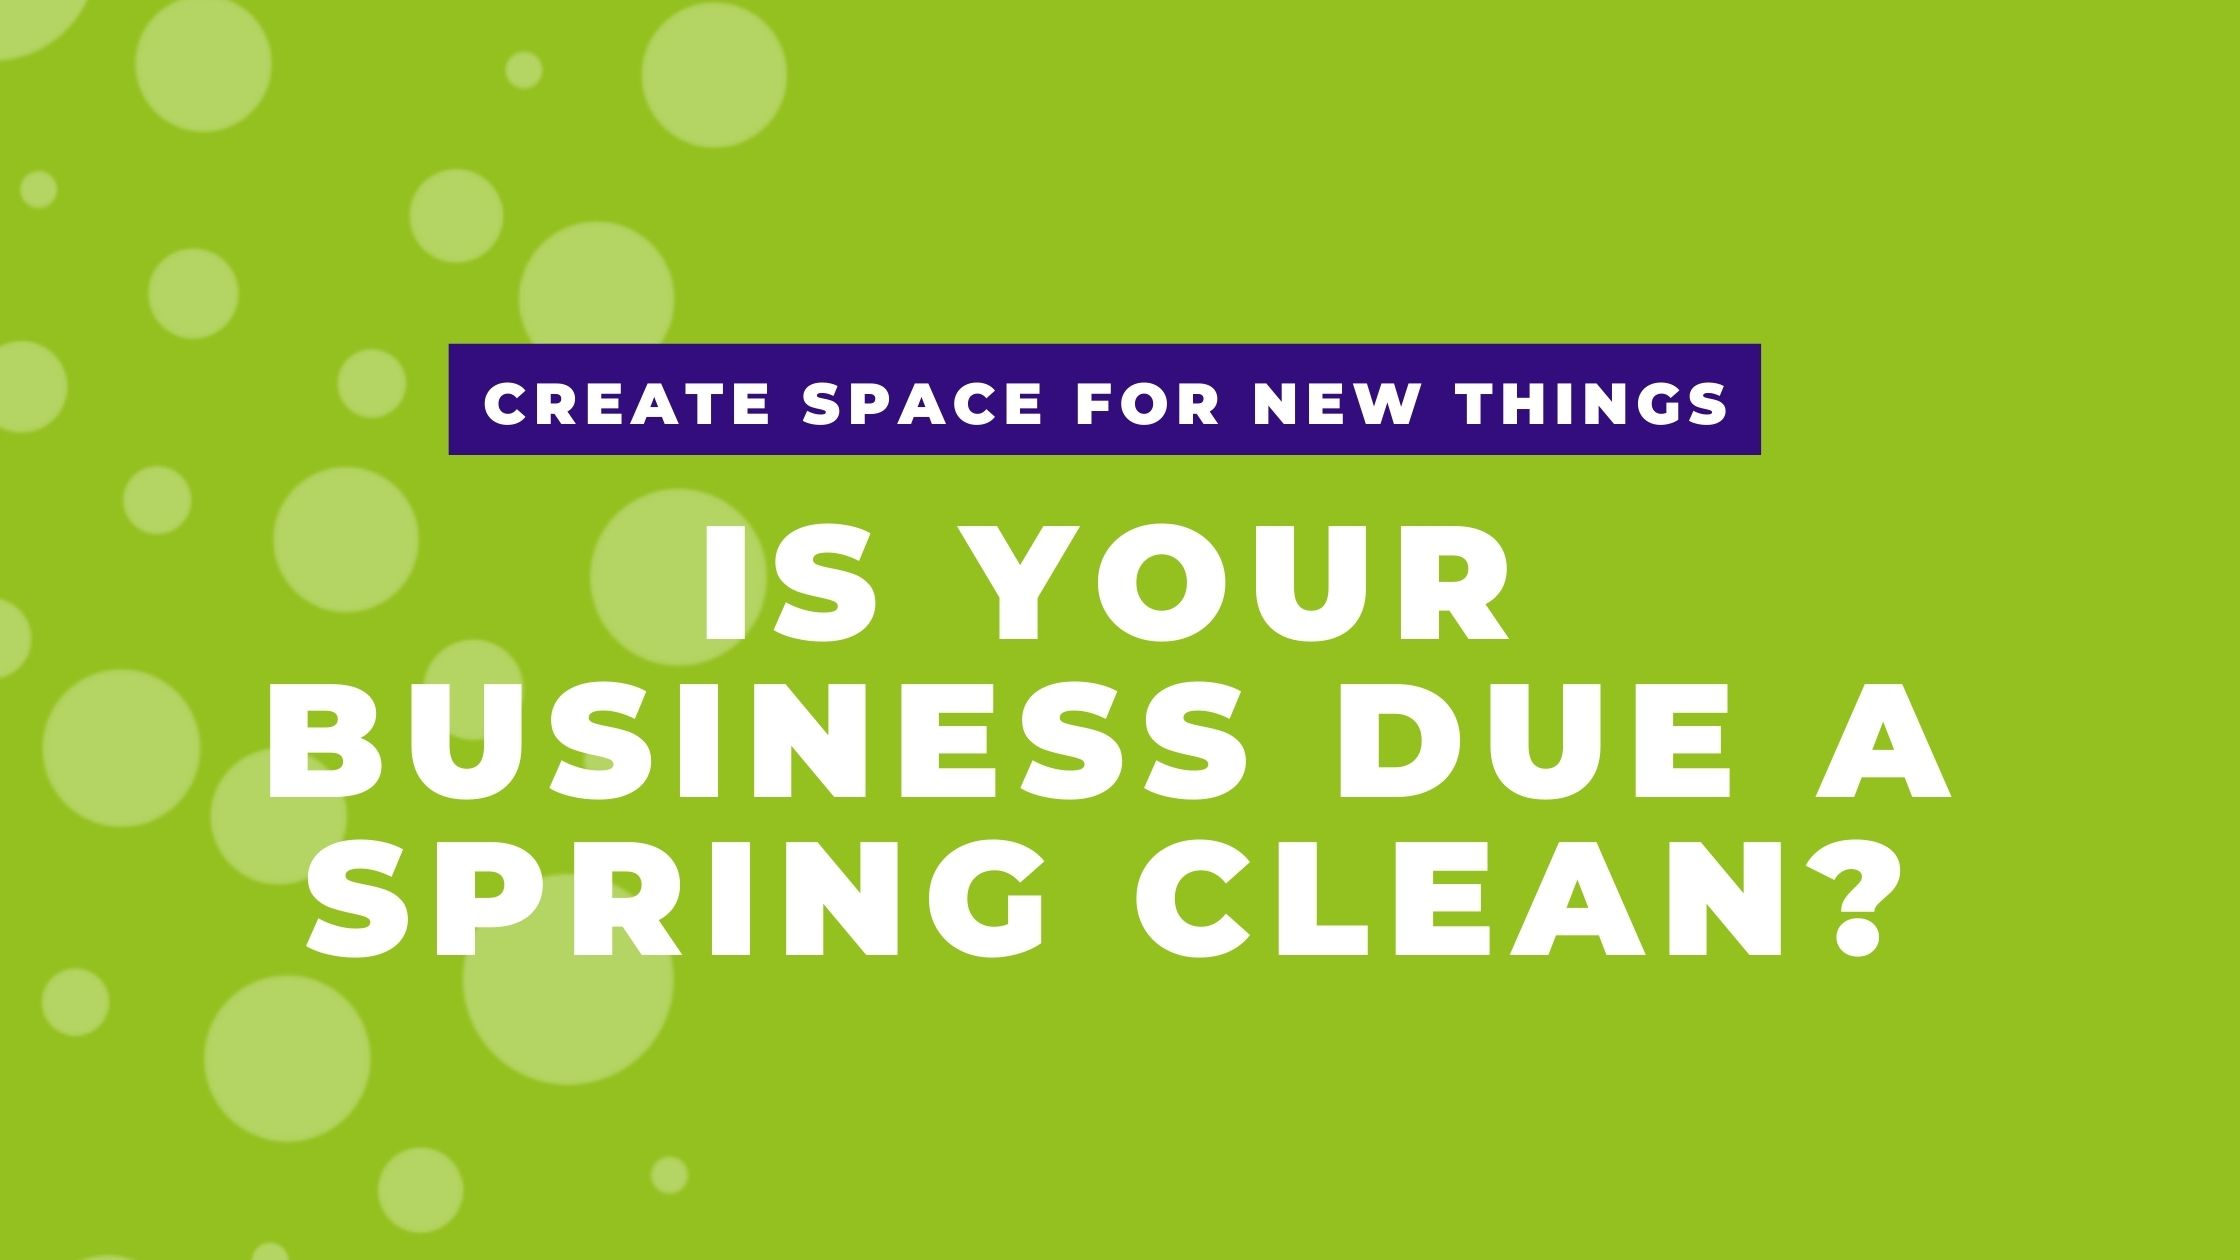 Is your business due a Spring clean?